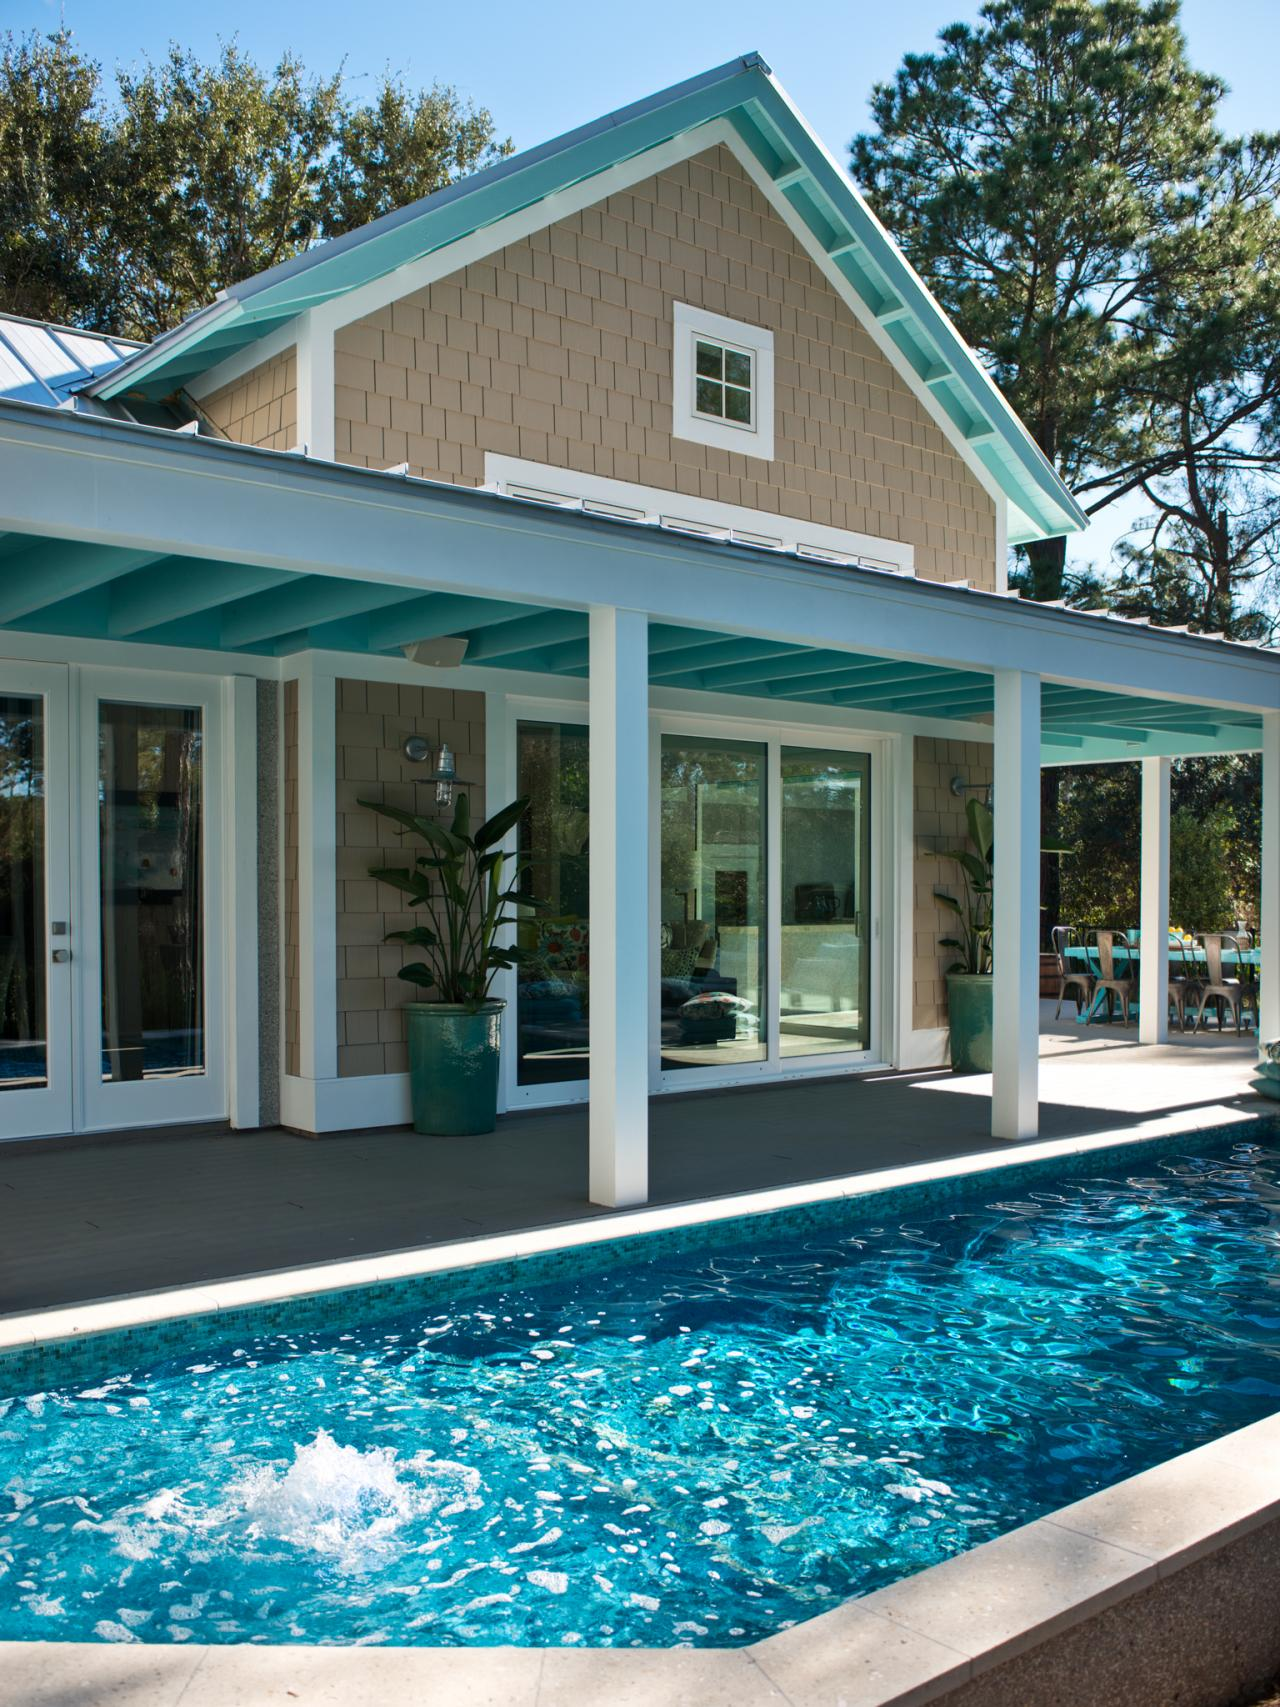 pool from hgtv smart home 2013 hgtv smart home 2013 hgtv. Black Bedroom Furniture Sets. Home Design Ideas